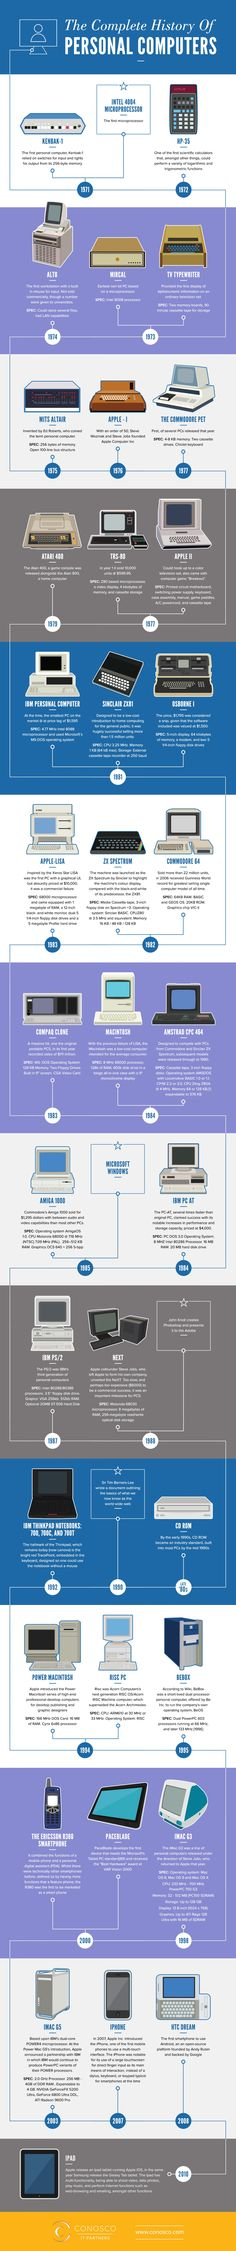 The Complete History of Personal Computers #infographic www.opticonx.com